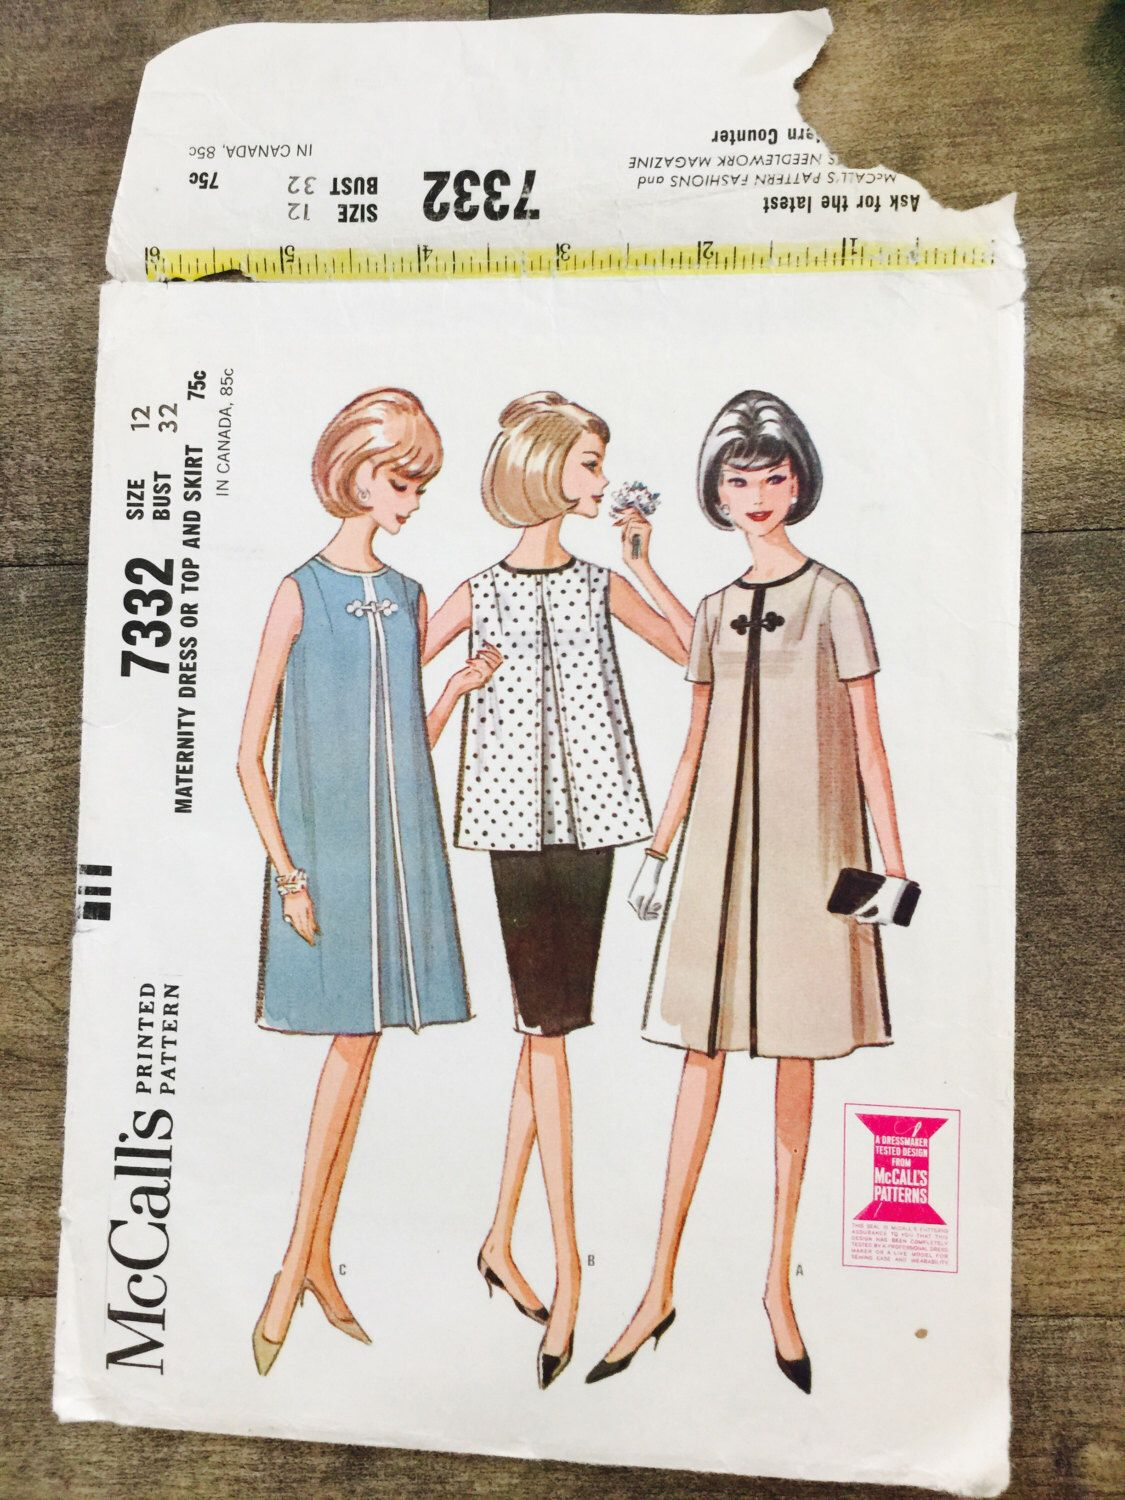 Vintage 60s maternity dress or top and skirt sewing pattern vintage 60s maternity dress or top and skirt sewing pattern mccalls 7332 size 12 bust 32 ombrellifo Gallery